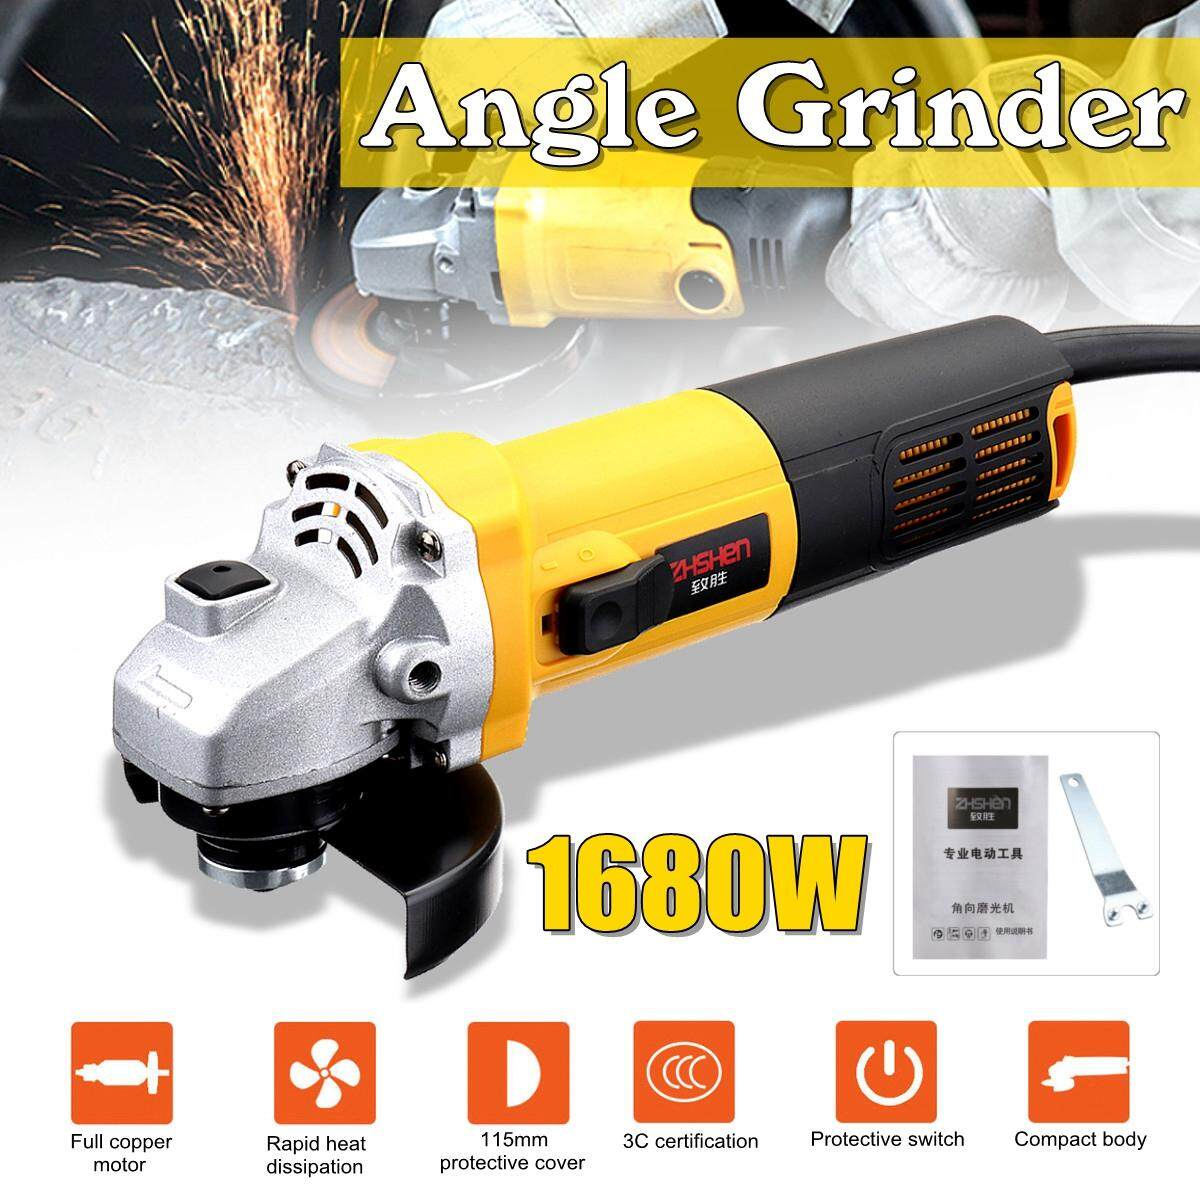 【Free Shipping + Flash Deal】220V/50Hz 1680W Electric Corded Angle Grinder Polisher Kit Grinding Machine with Wrench Metal Wood Cutting Power Tool